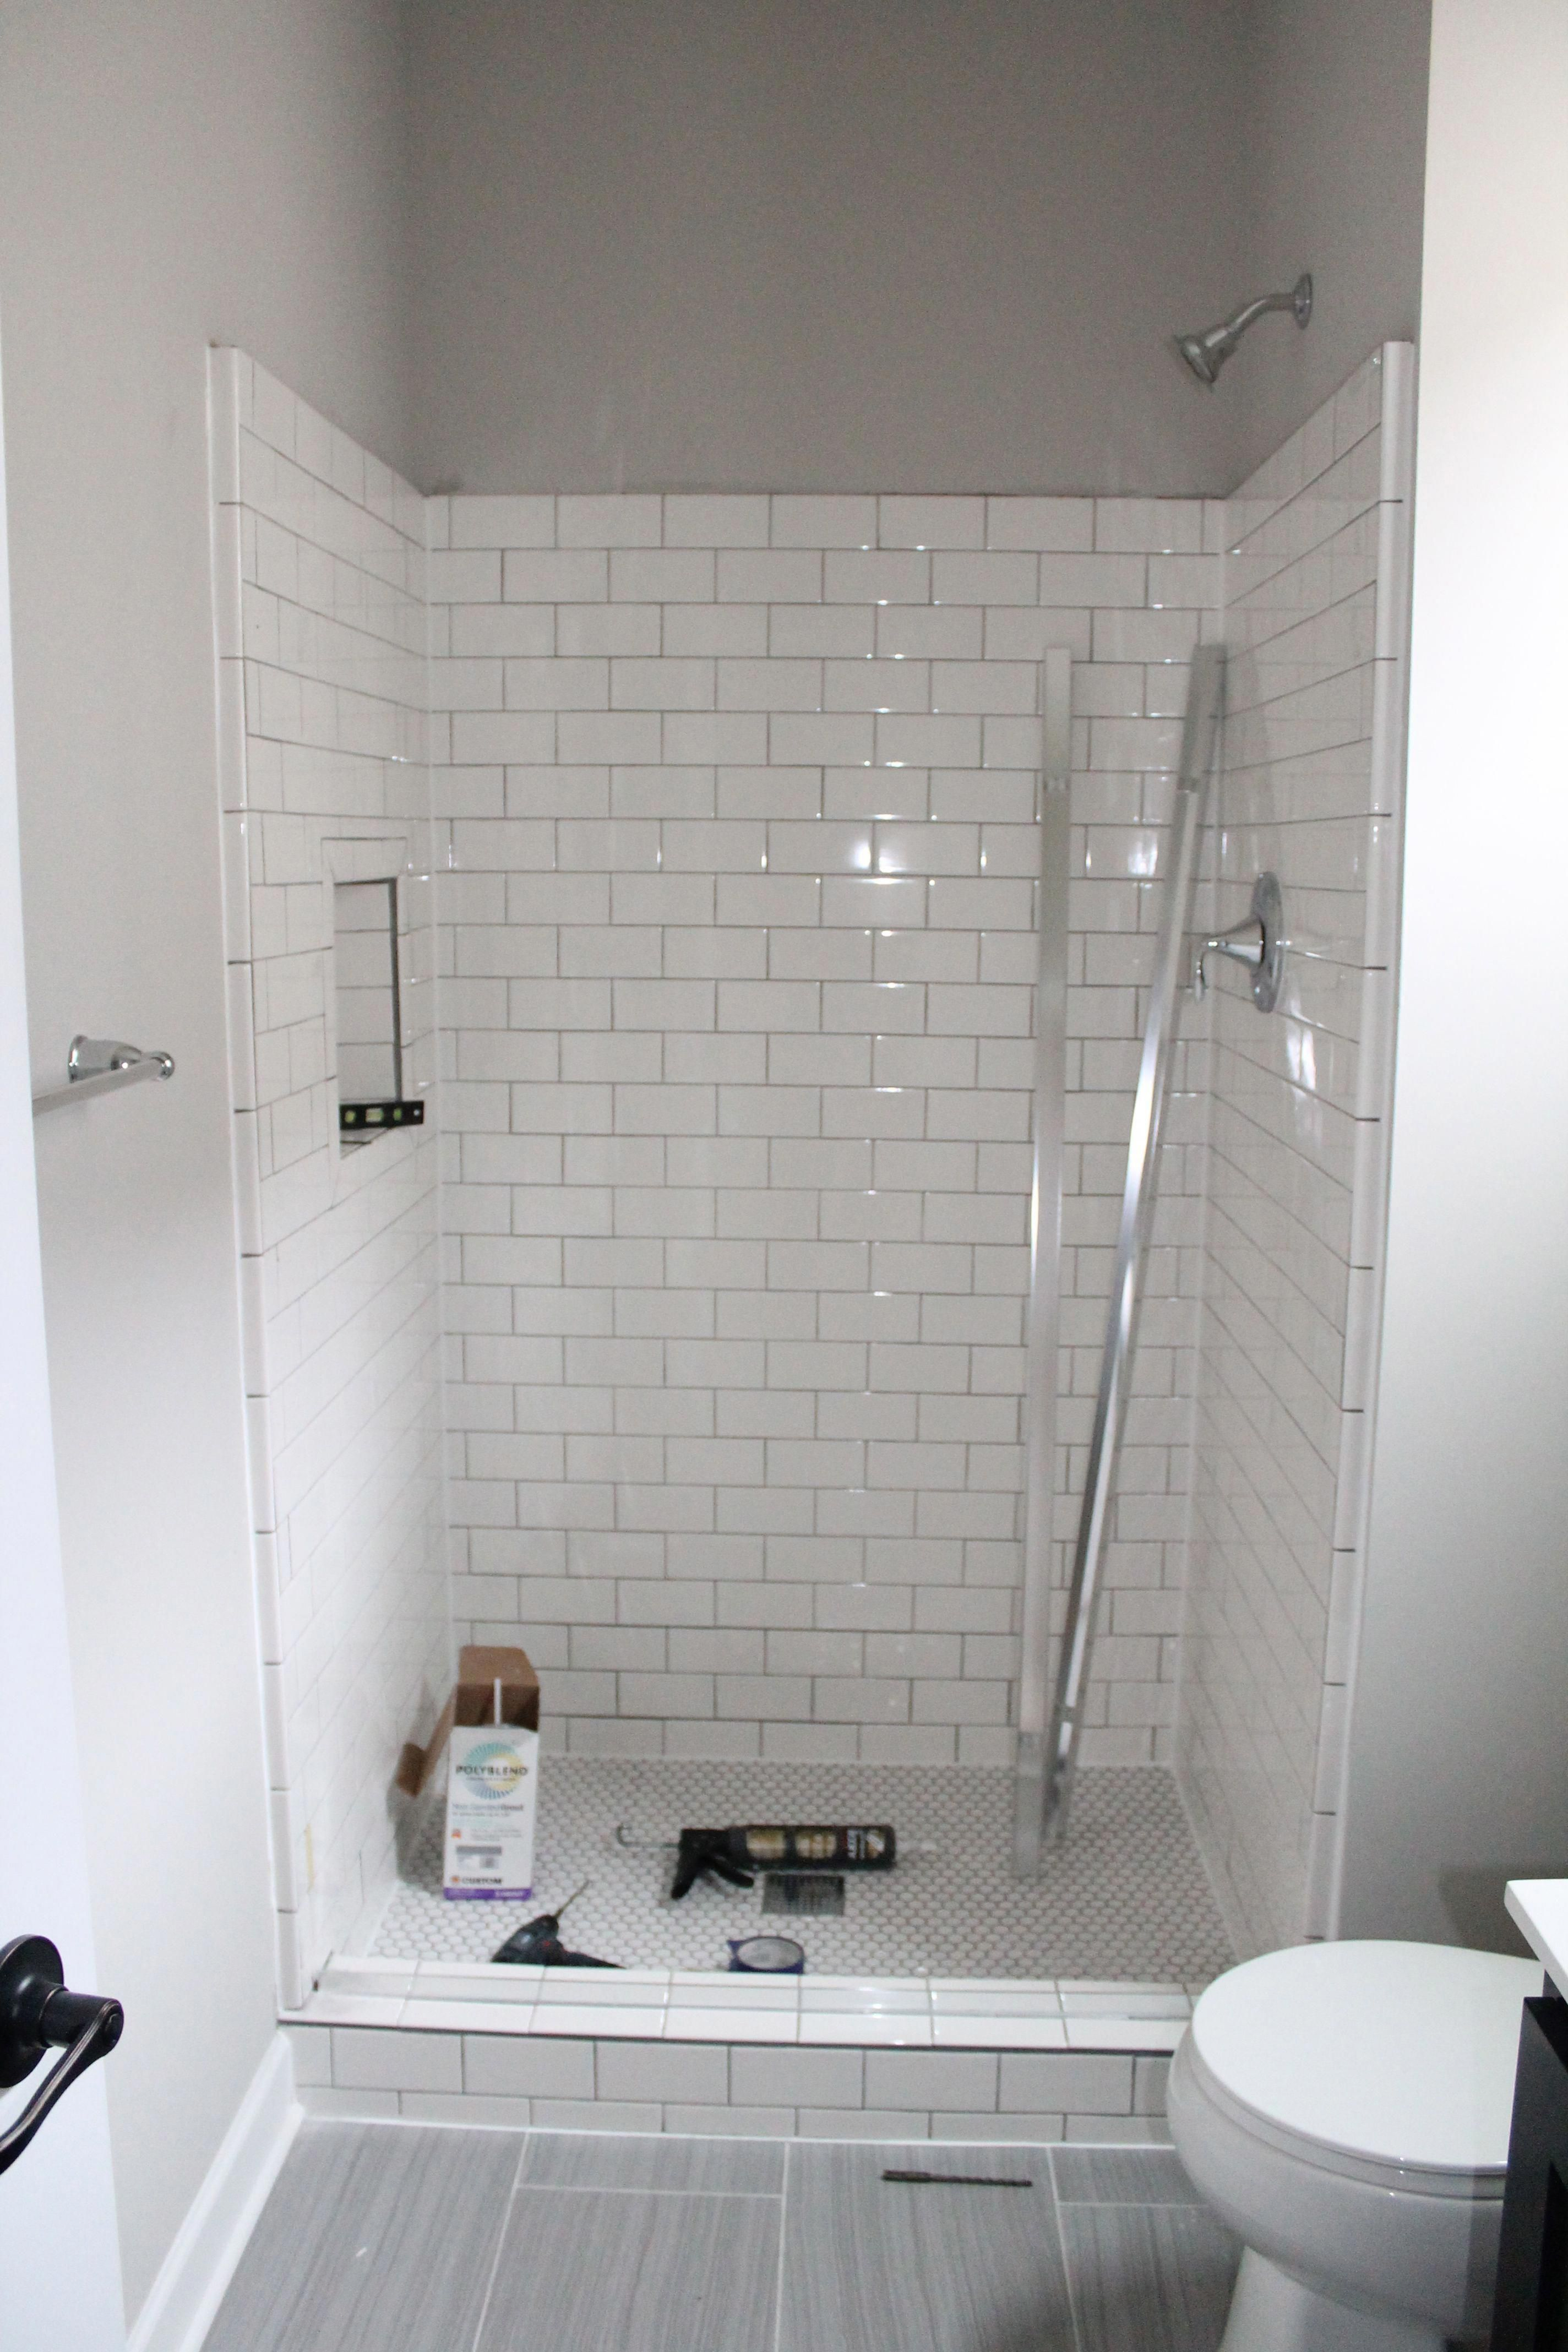 Have A Peek At These Men Easy Remodeling Ideas Bathroom Remodel Cost Small Bathroom Remodel Cost White Subway Tile Bathroom